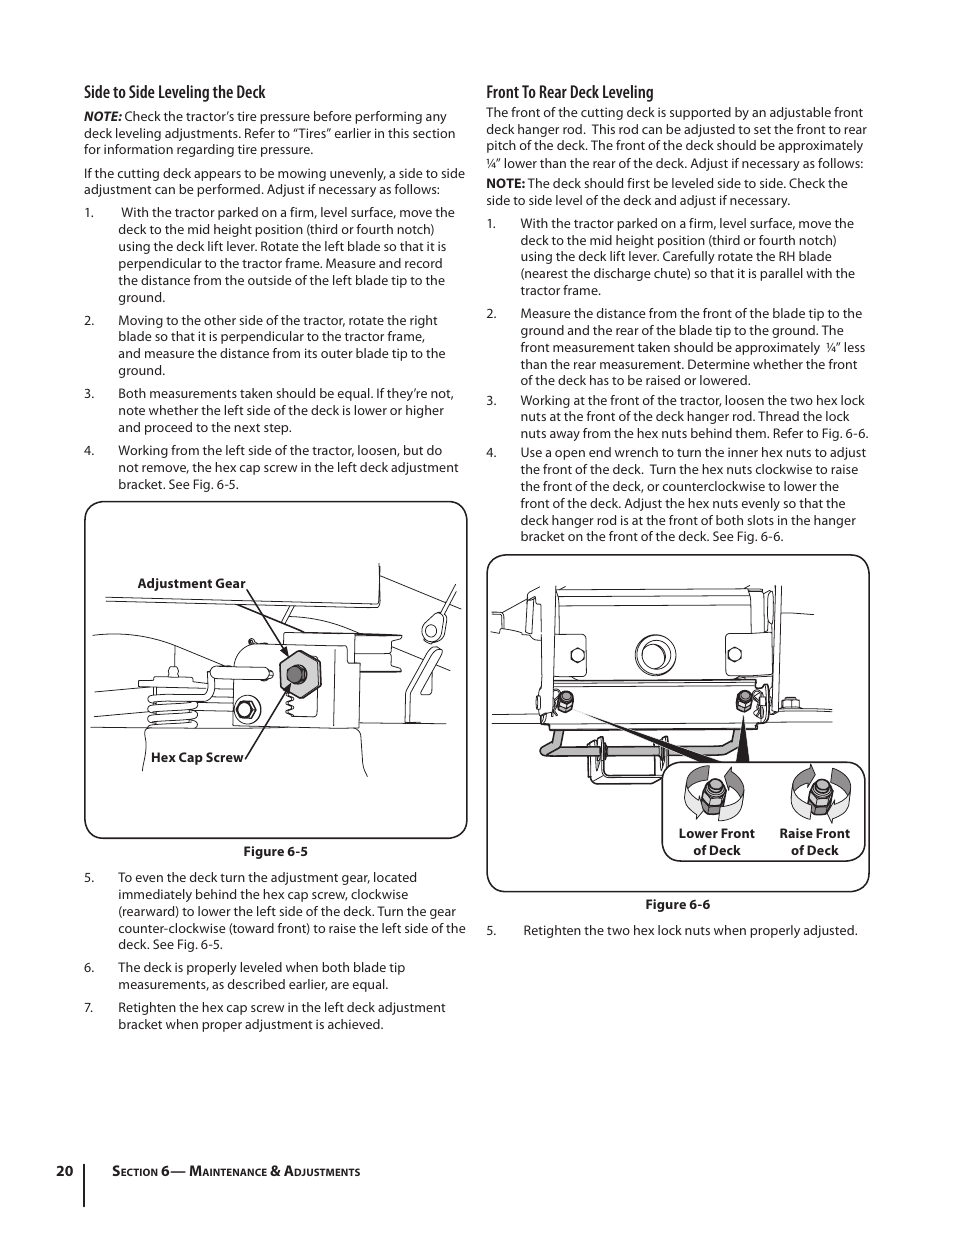 Side to side leveling the deck, Front to rear deck leveling | Cub Cadet  I1042